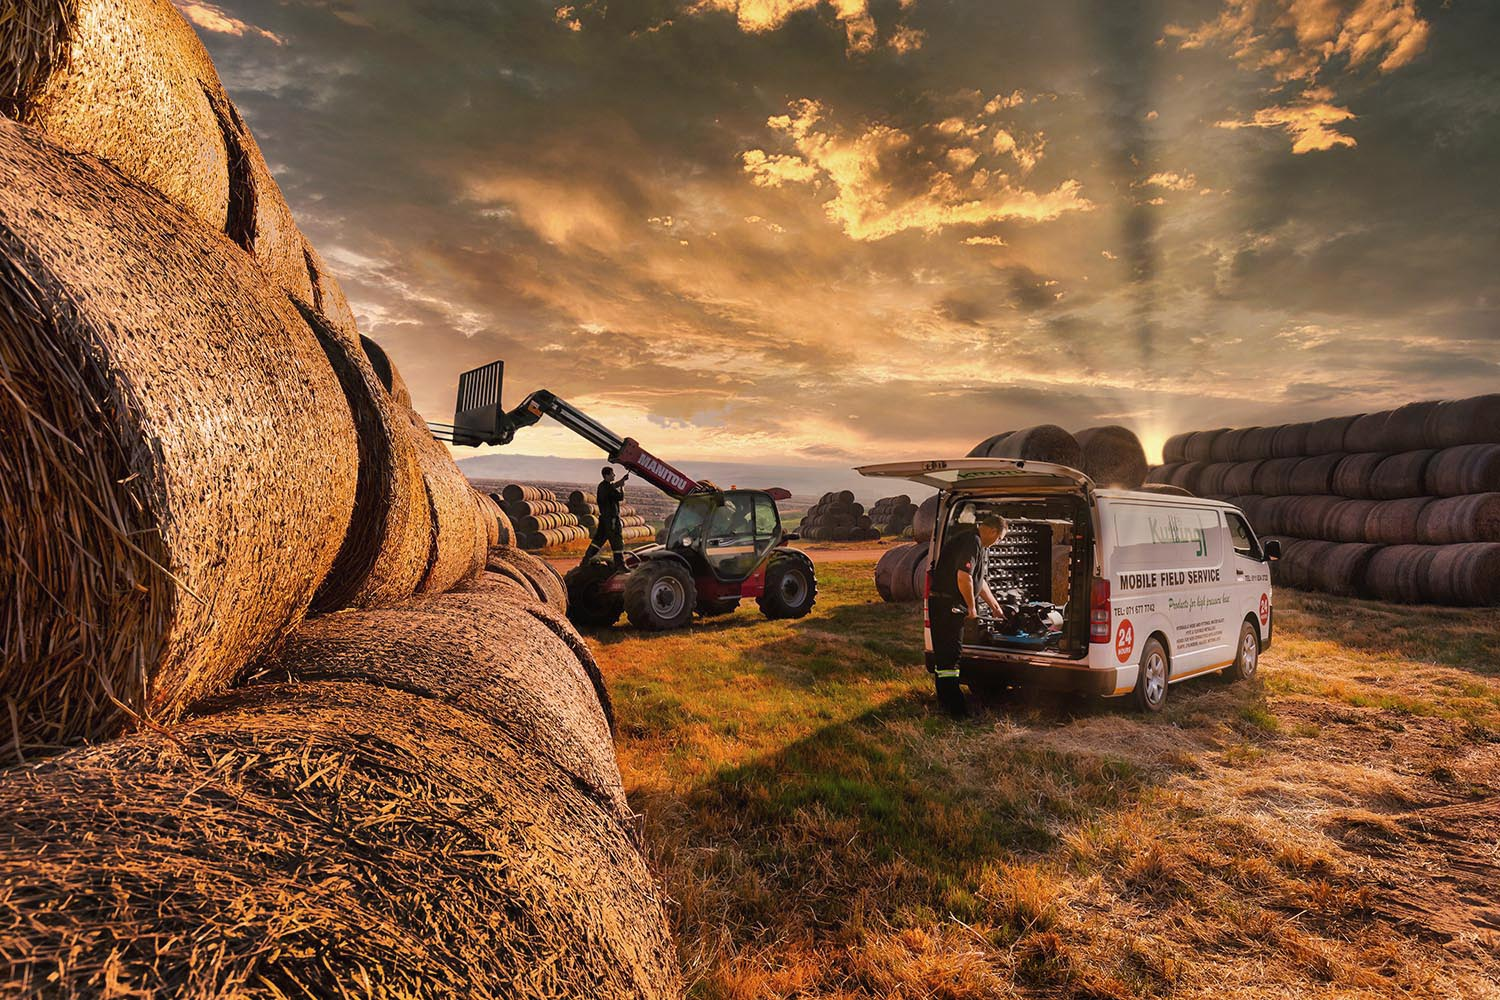 Agricultural equipment being maintained on a farm at sunset